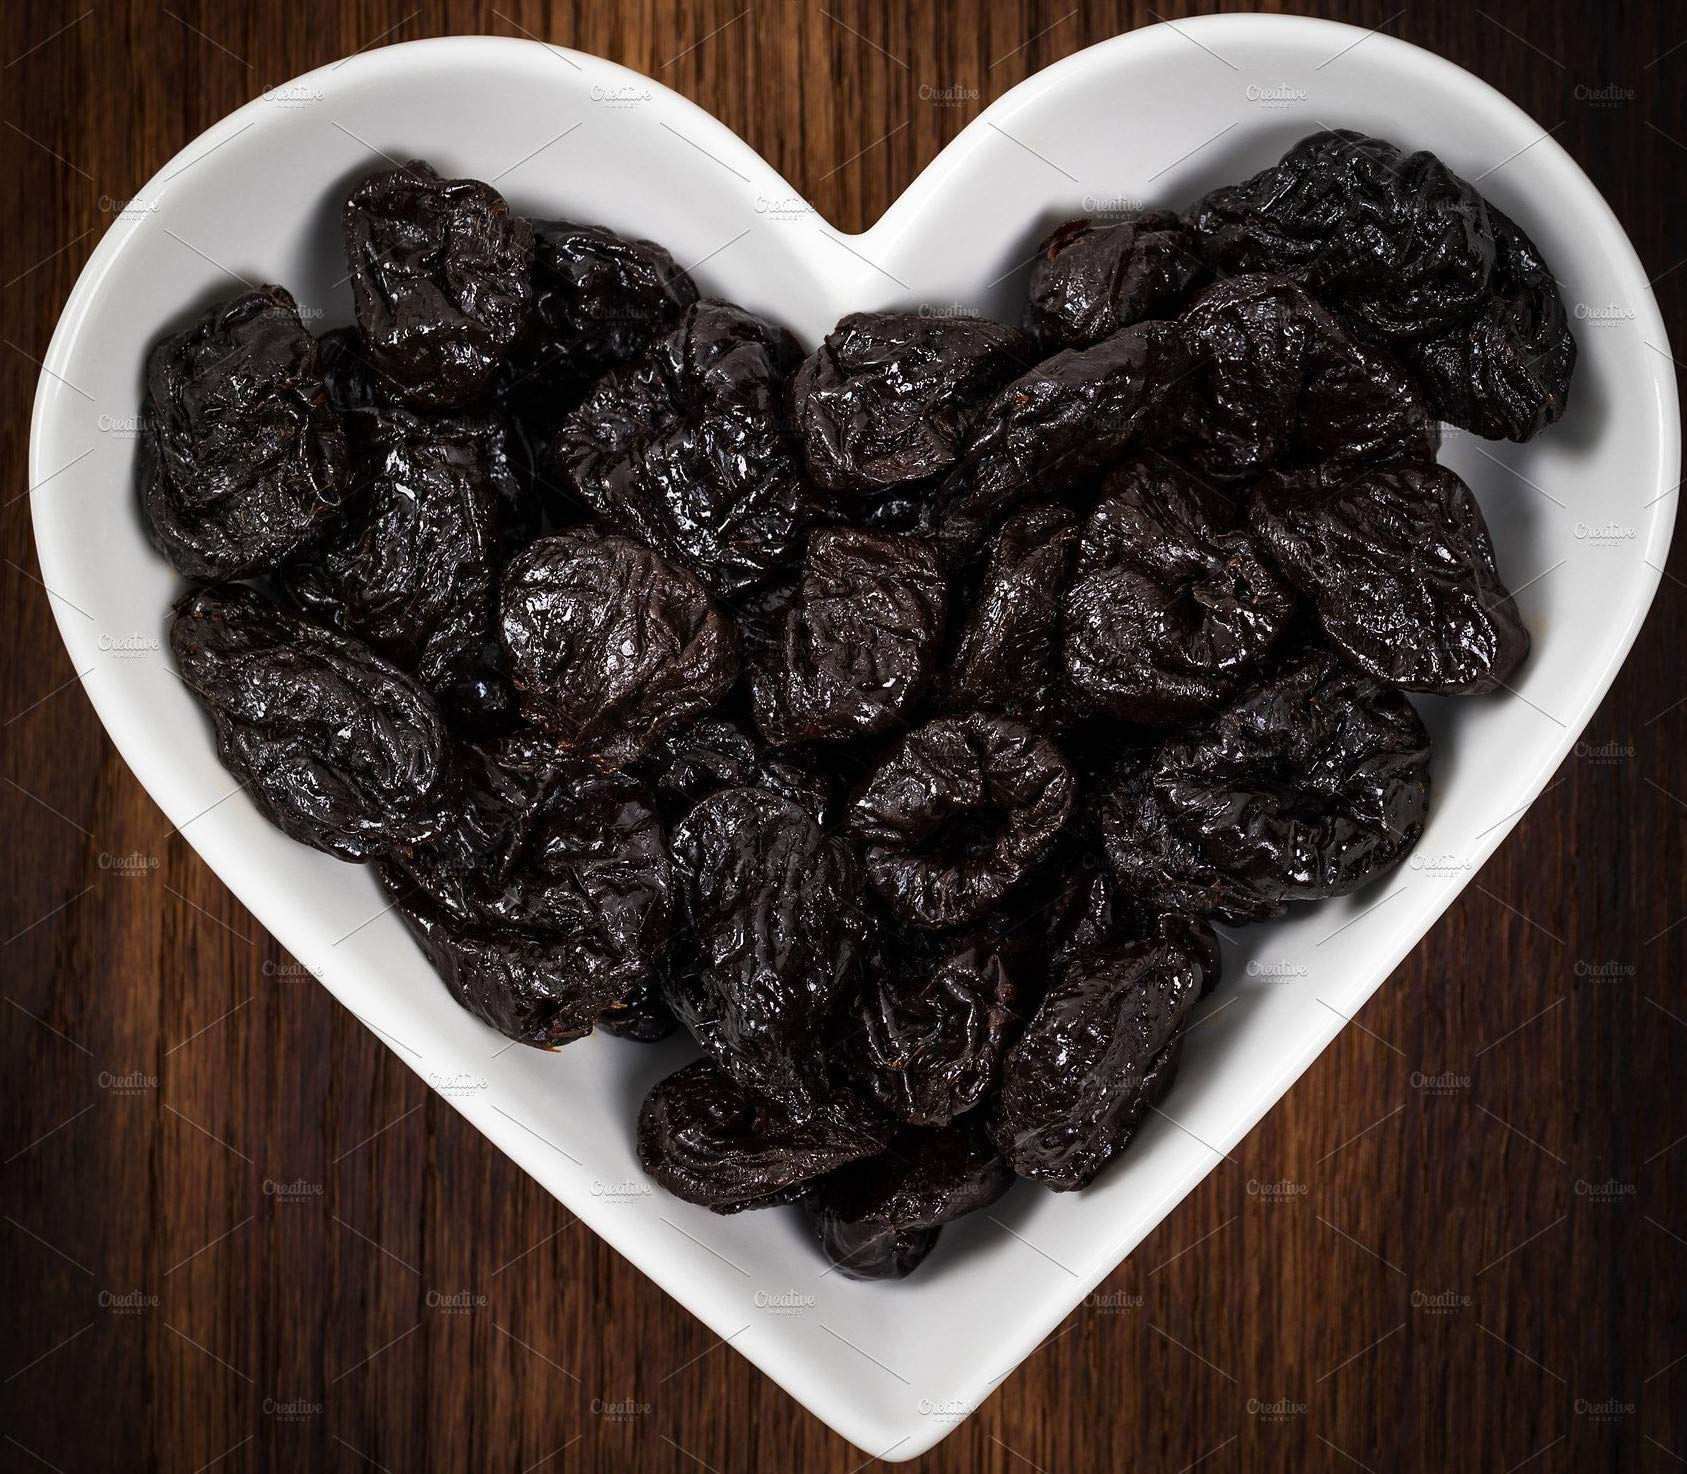 California Grown Dried Pitted Plums Prunes, 2 Bags(1Lb each) 2Lb total by Petrovsky